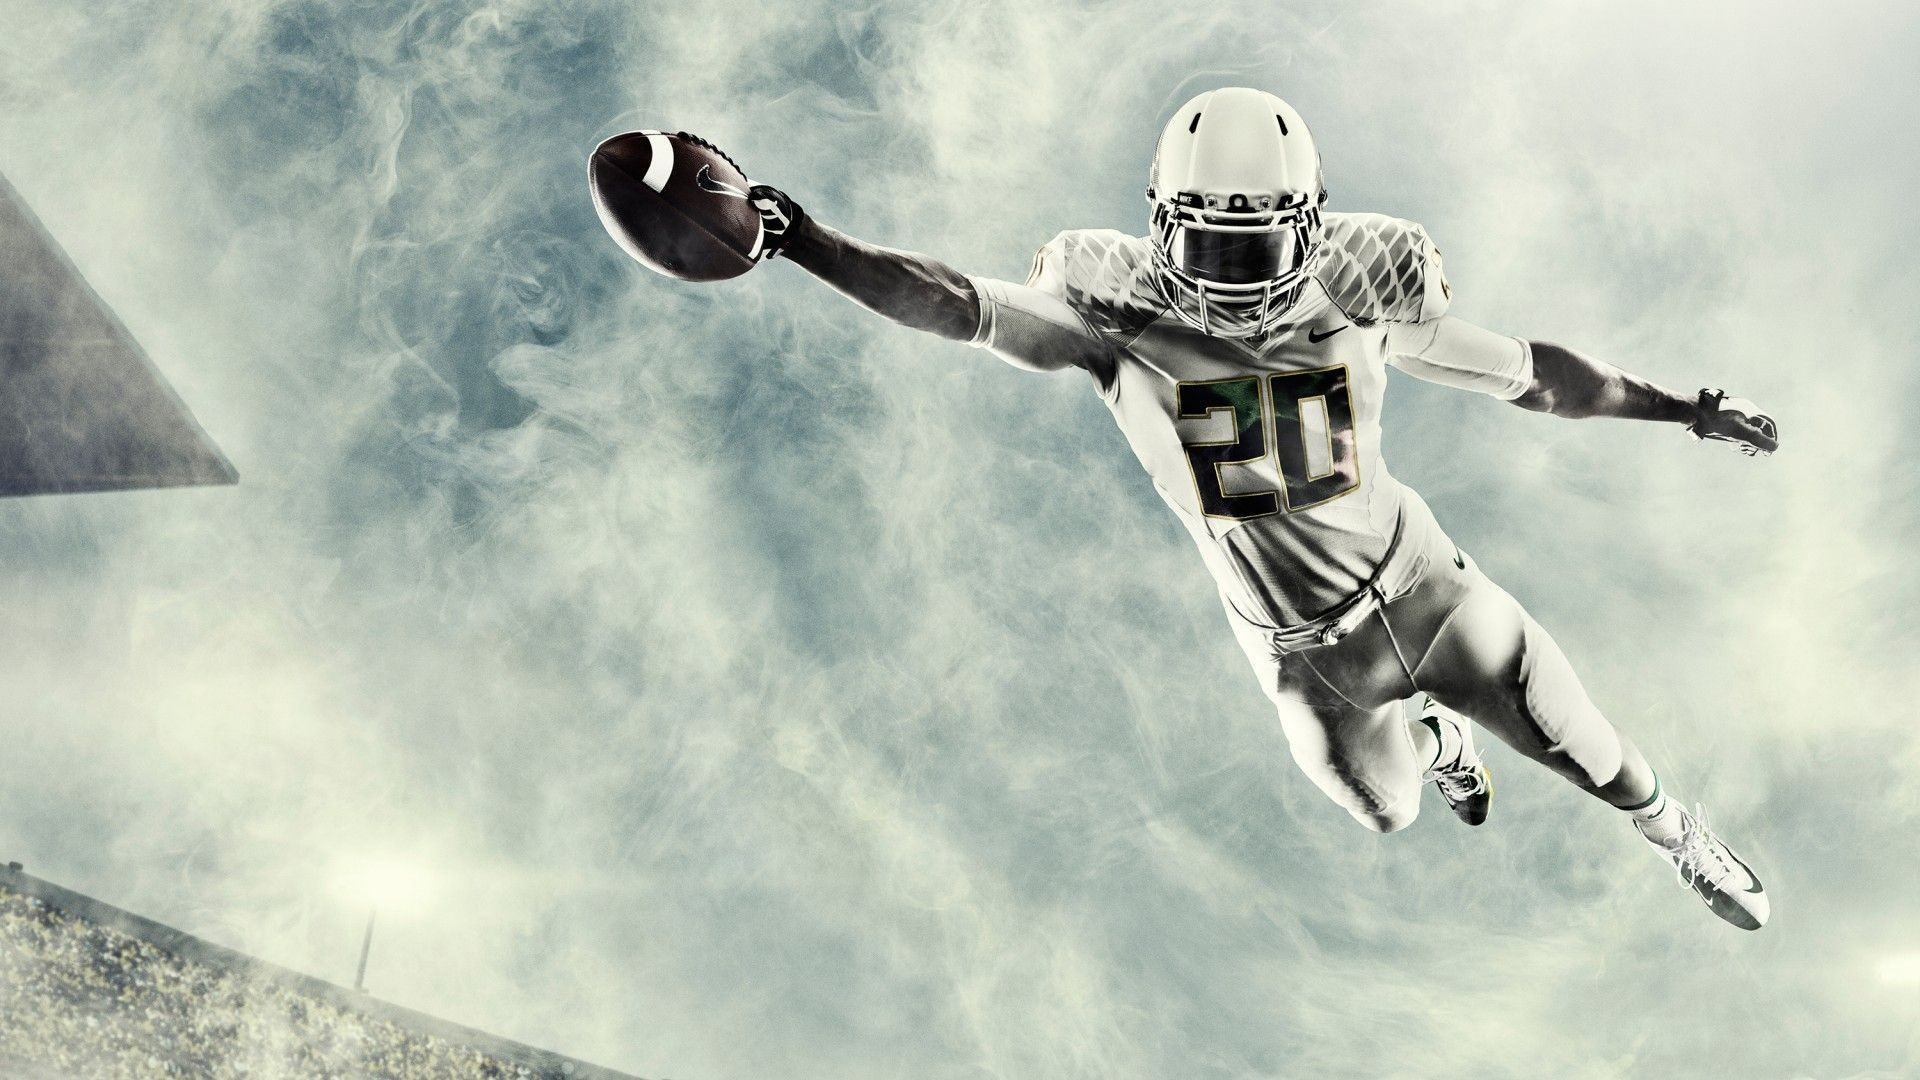 1920x1080 American Football – Background download free choice